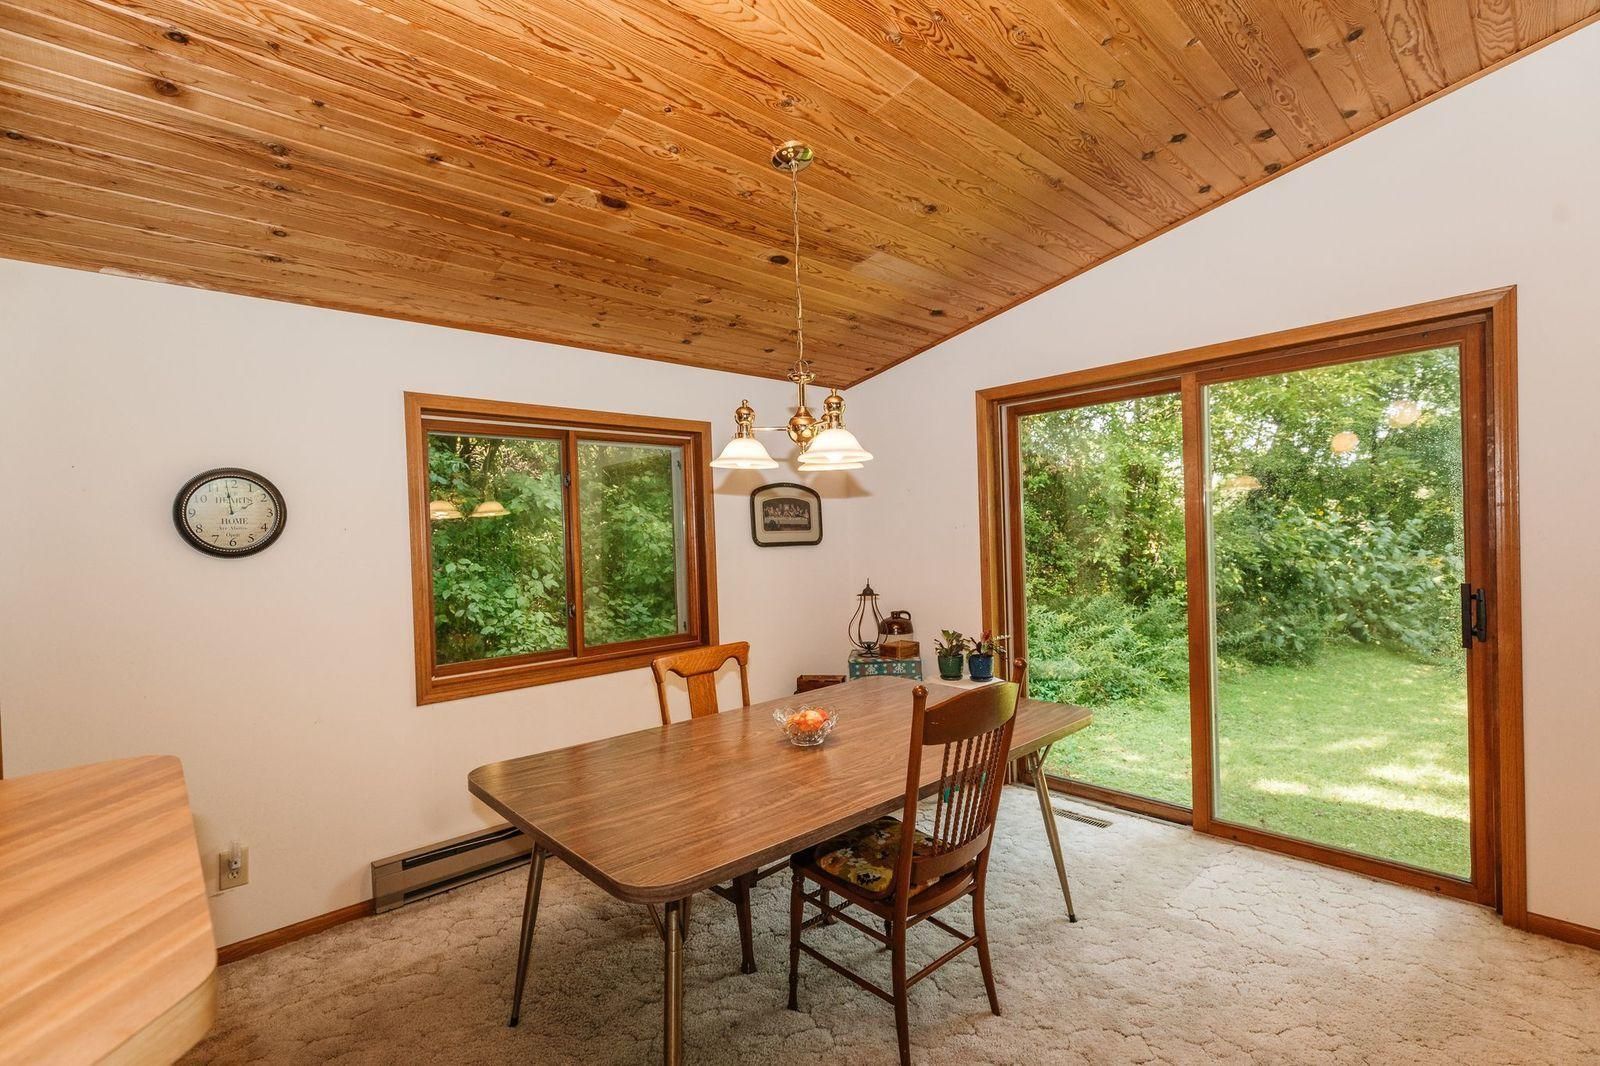 685 Green Bay Dr, Mayville, Wisconsin 53050, 3 Bedrooms Bedrooms, ,1 BathroomBathrooms,Single-family,For Sale,Green Bay Dr,1707203